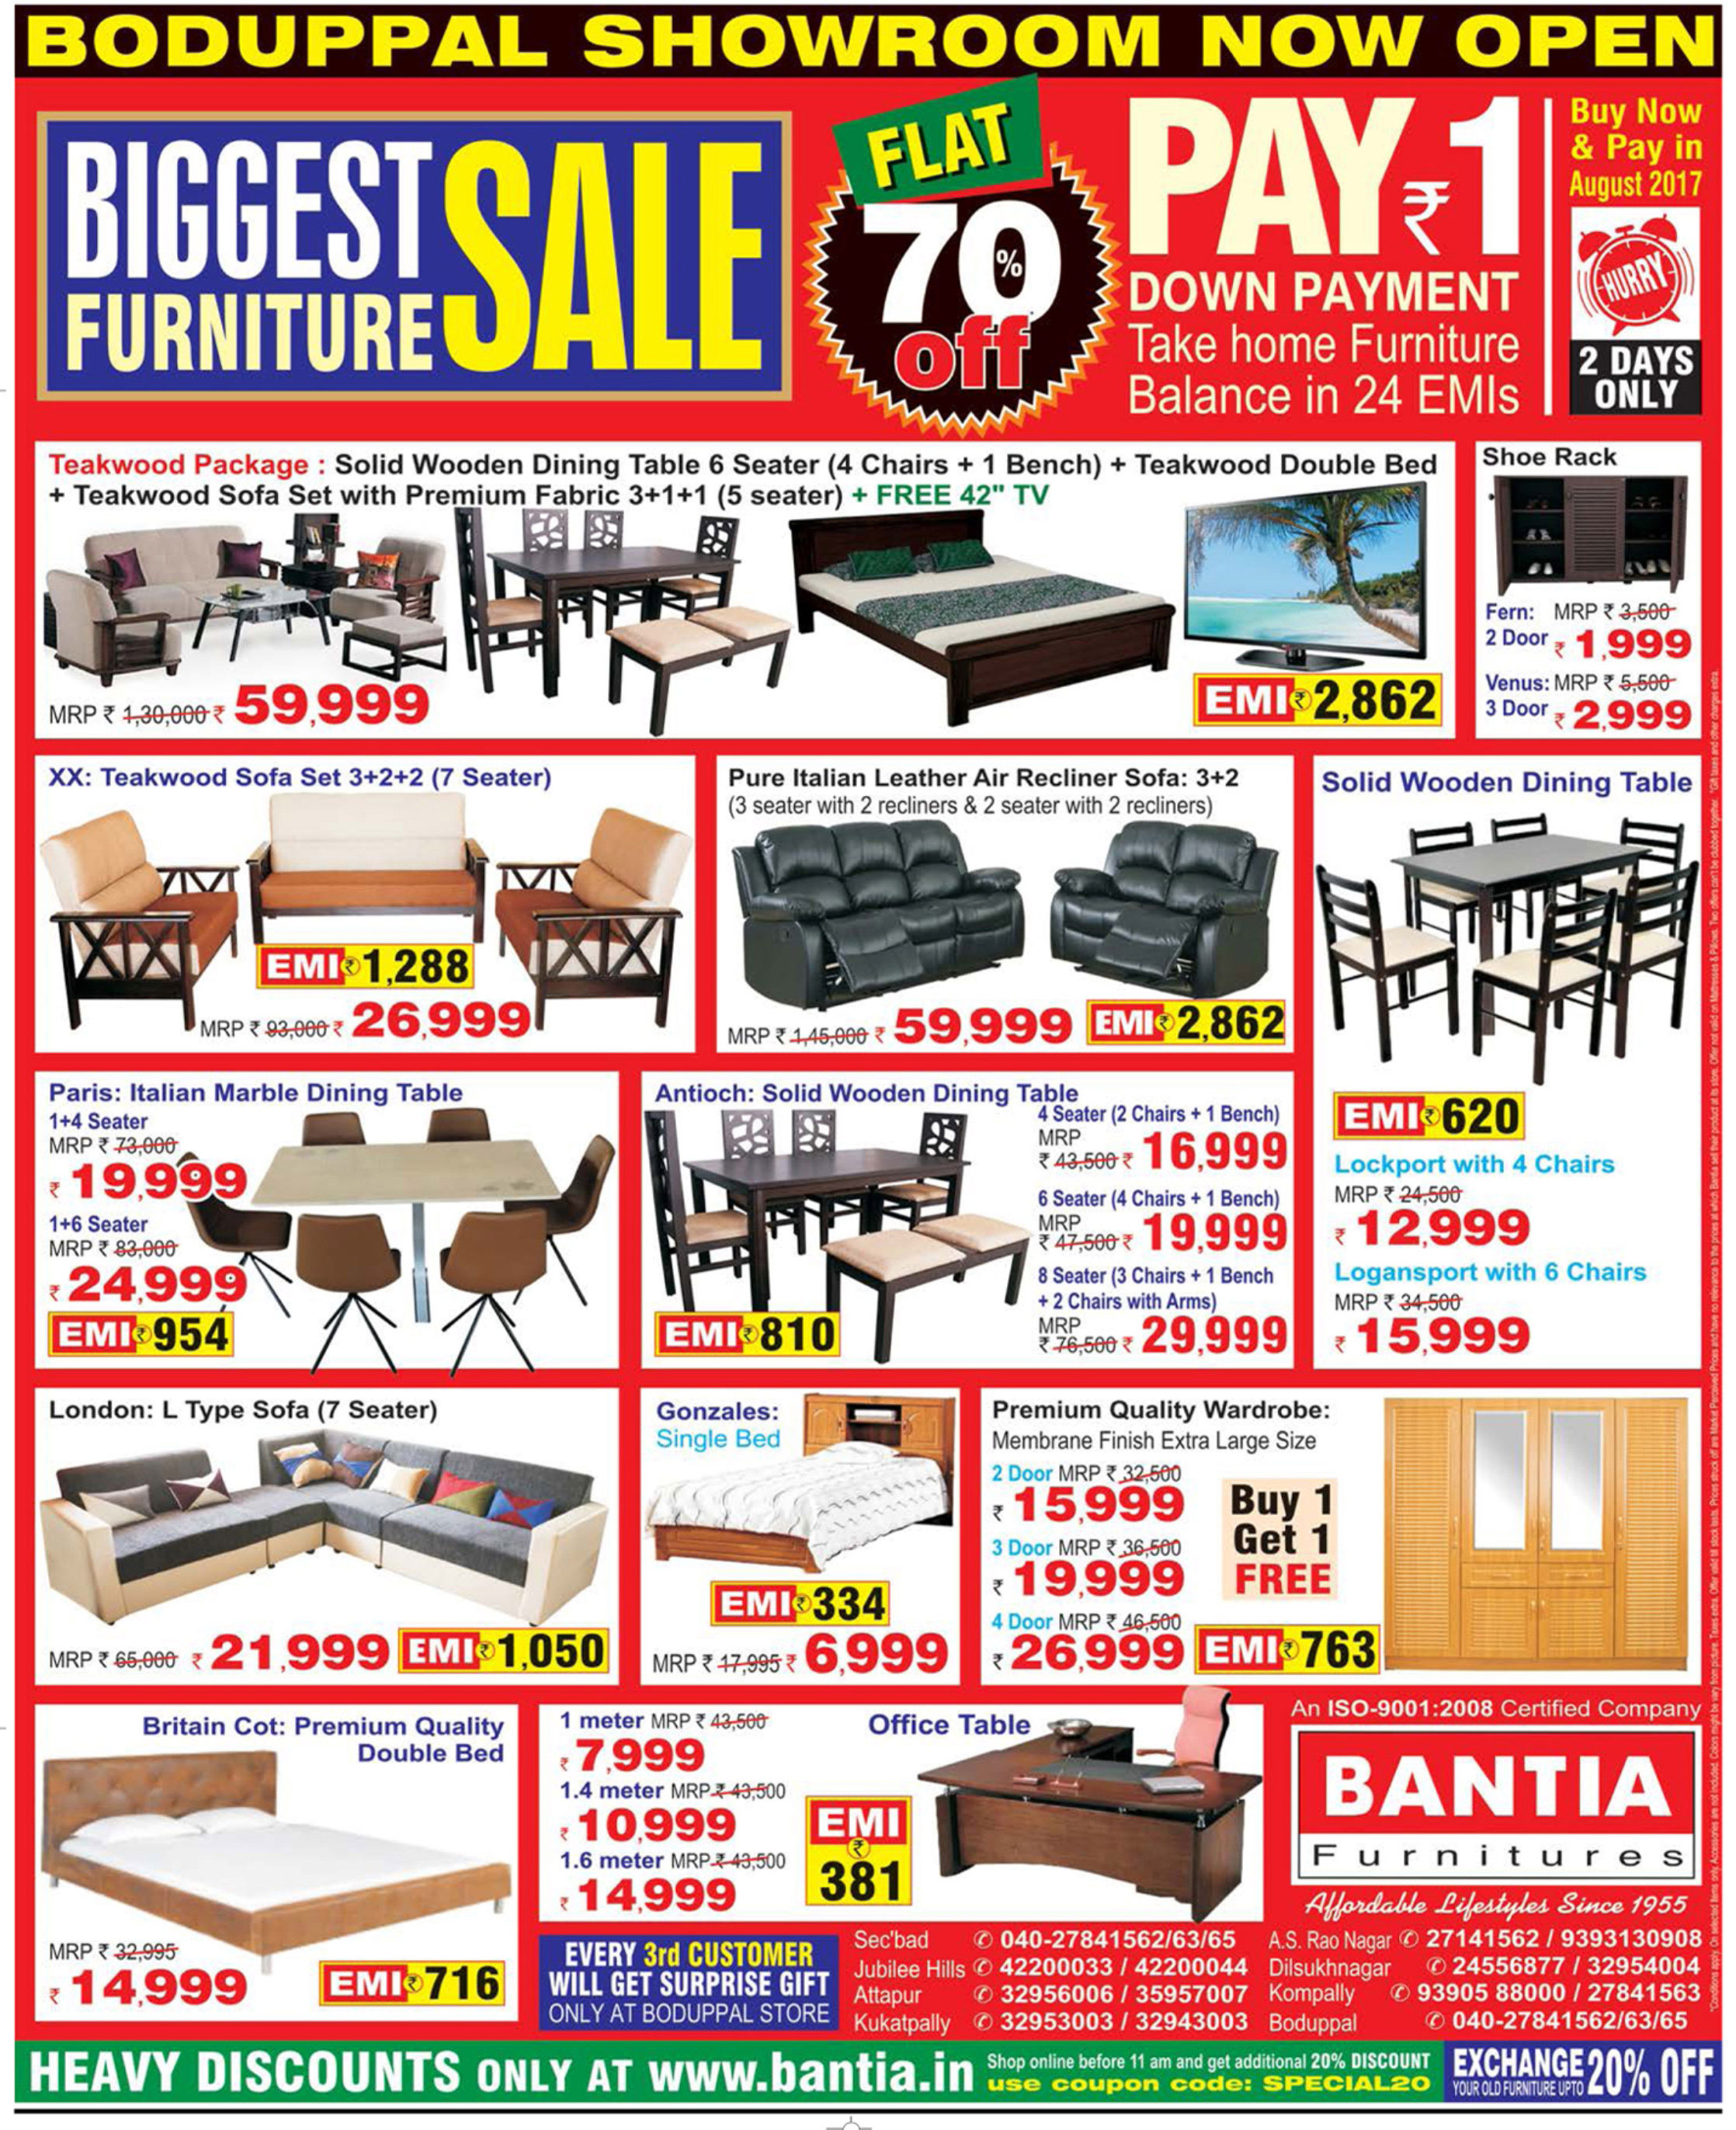 Furniture Store Ads: Bantia Furniture Biggest Furniture Sale Flat 70% Off Ad